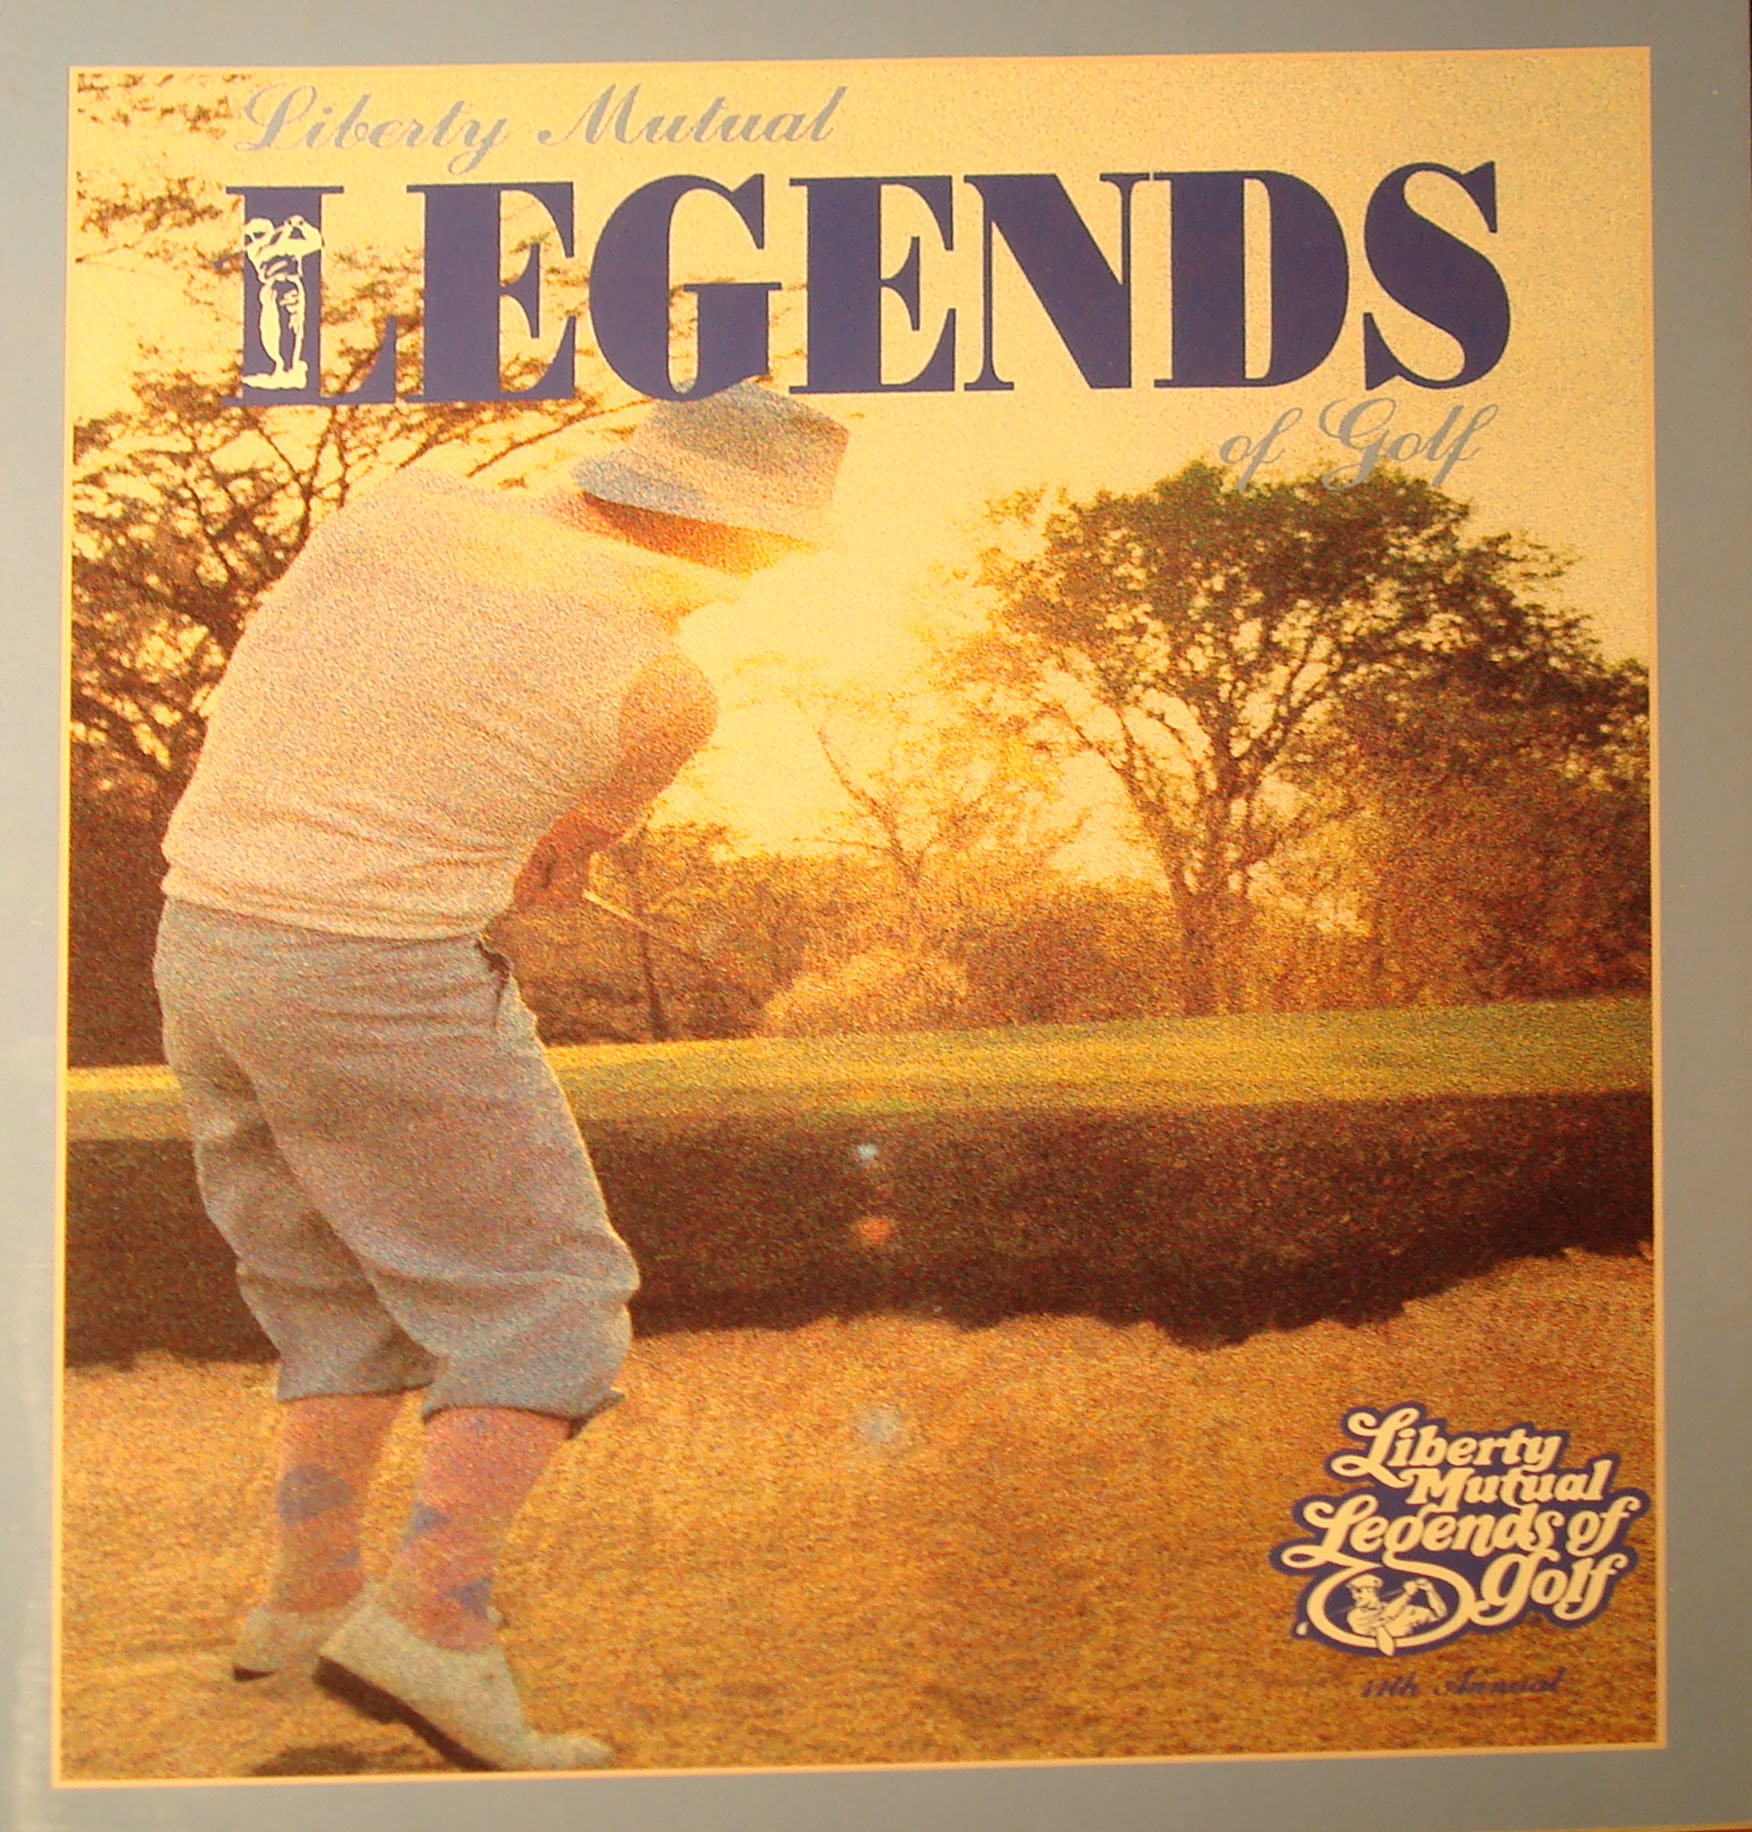 Photo of Golf – 1978 To 1982 – Highlights – Liberty Of Mutual Legends Of Golf Tournament – Onion Creek Austin